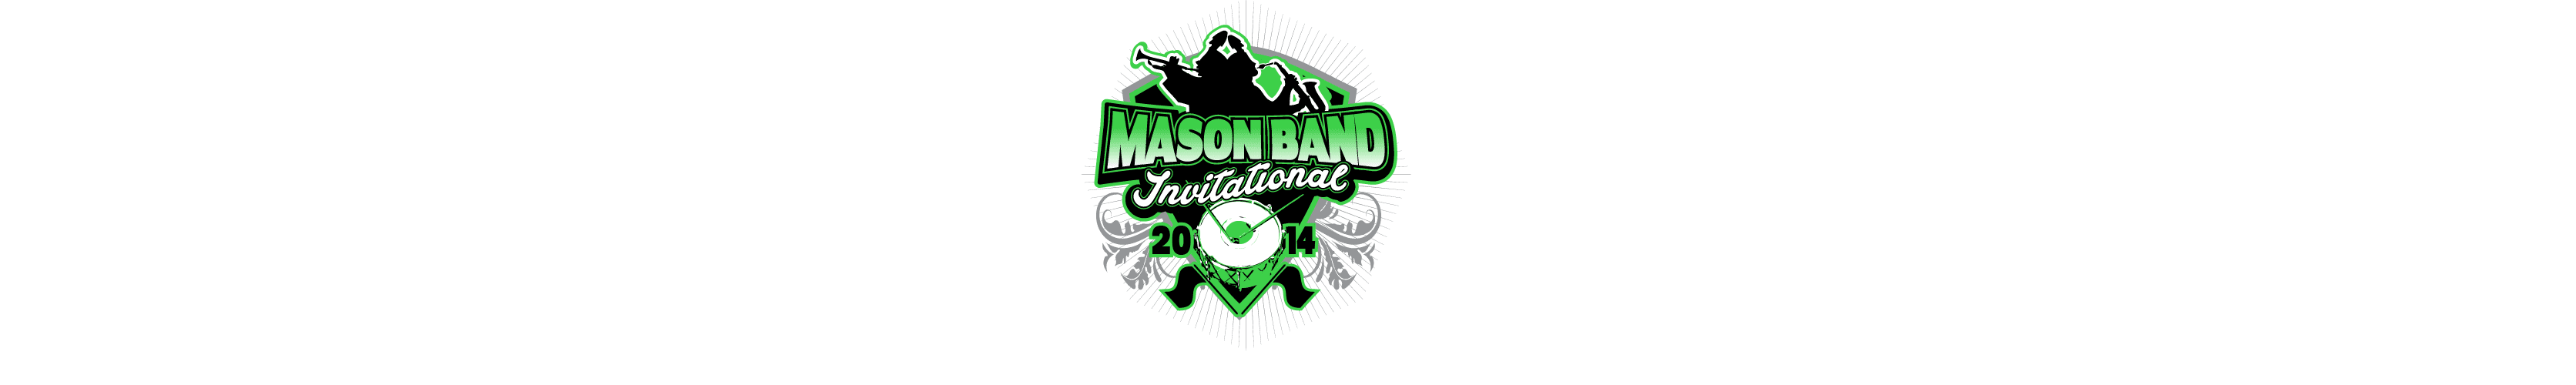 VECTOR LOGO DESIGN FOR PRINT MASON BAND AND COLOR GUARD INVITATIONAL EVENT